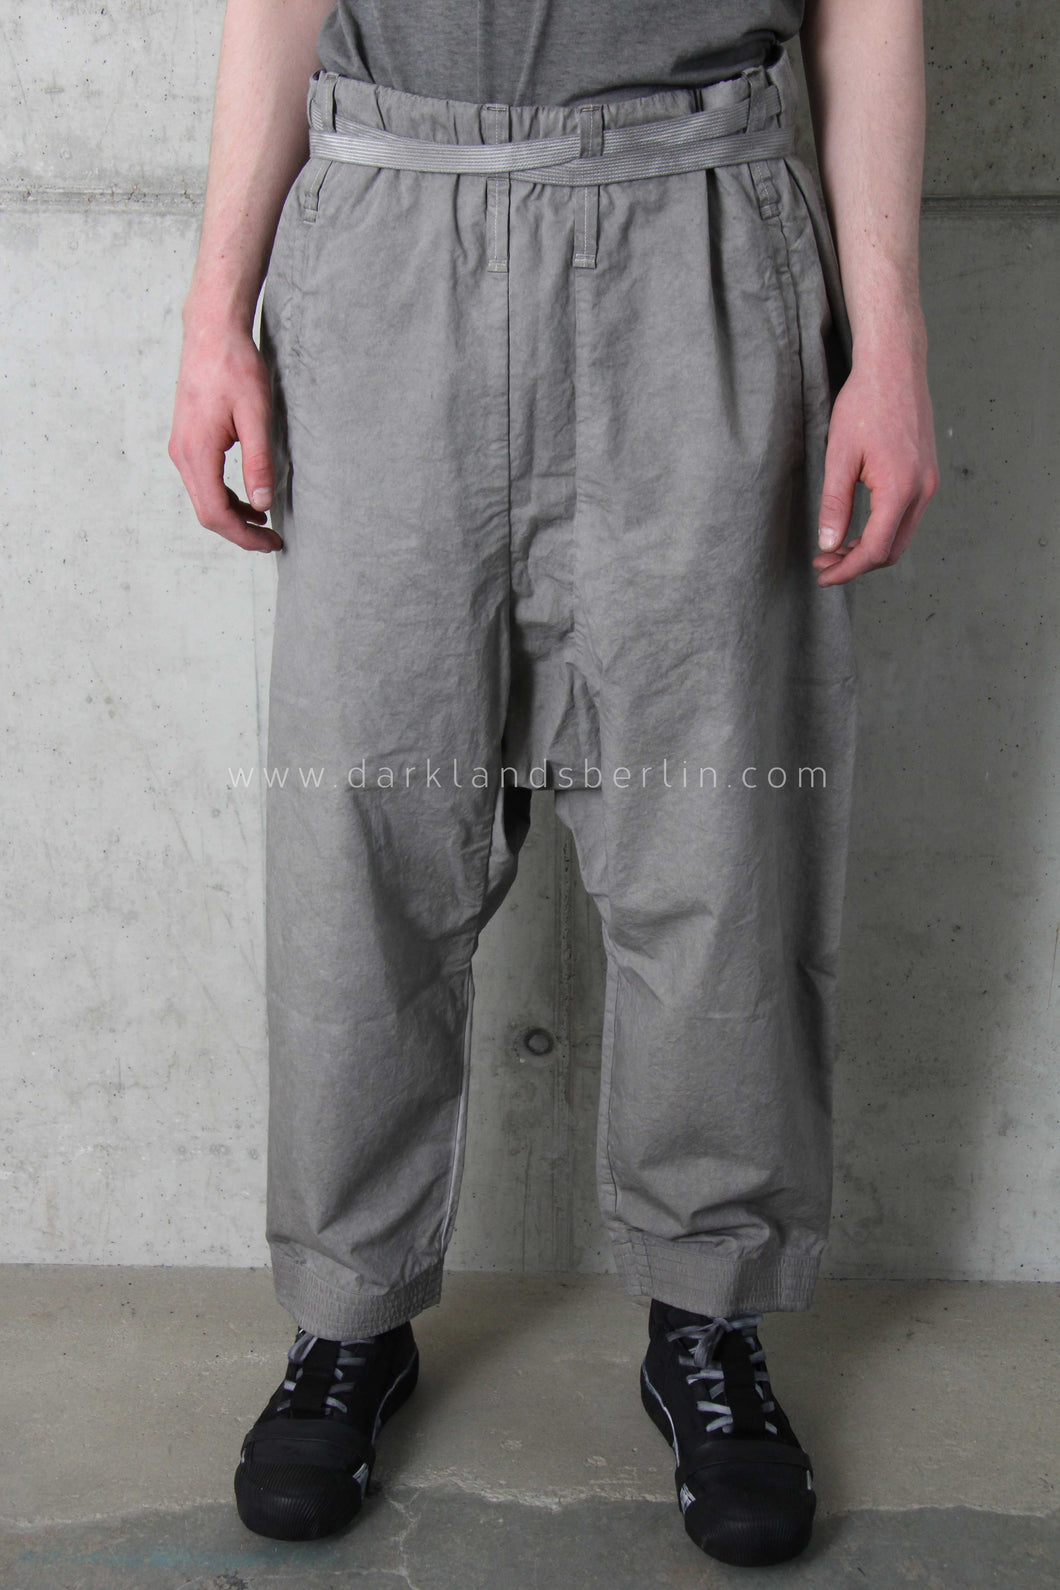 Boris Bidjan Saberi 'Brutalism' Light grey Karate trouser